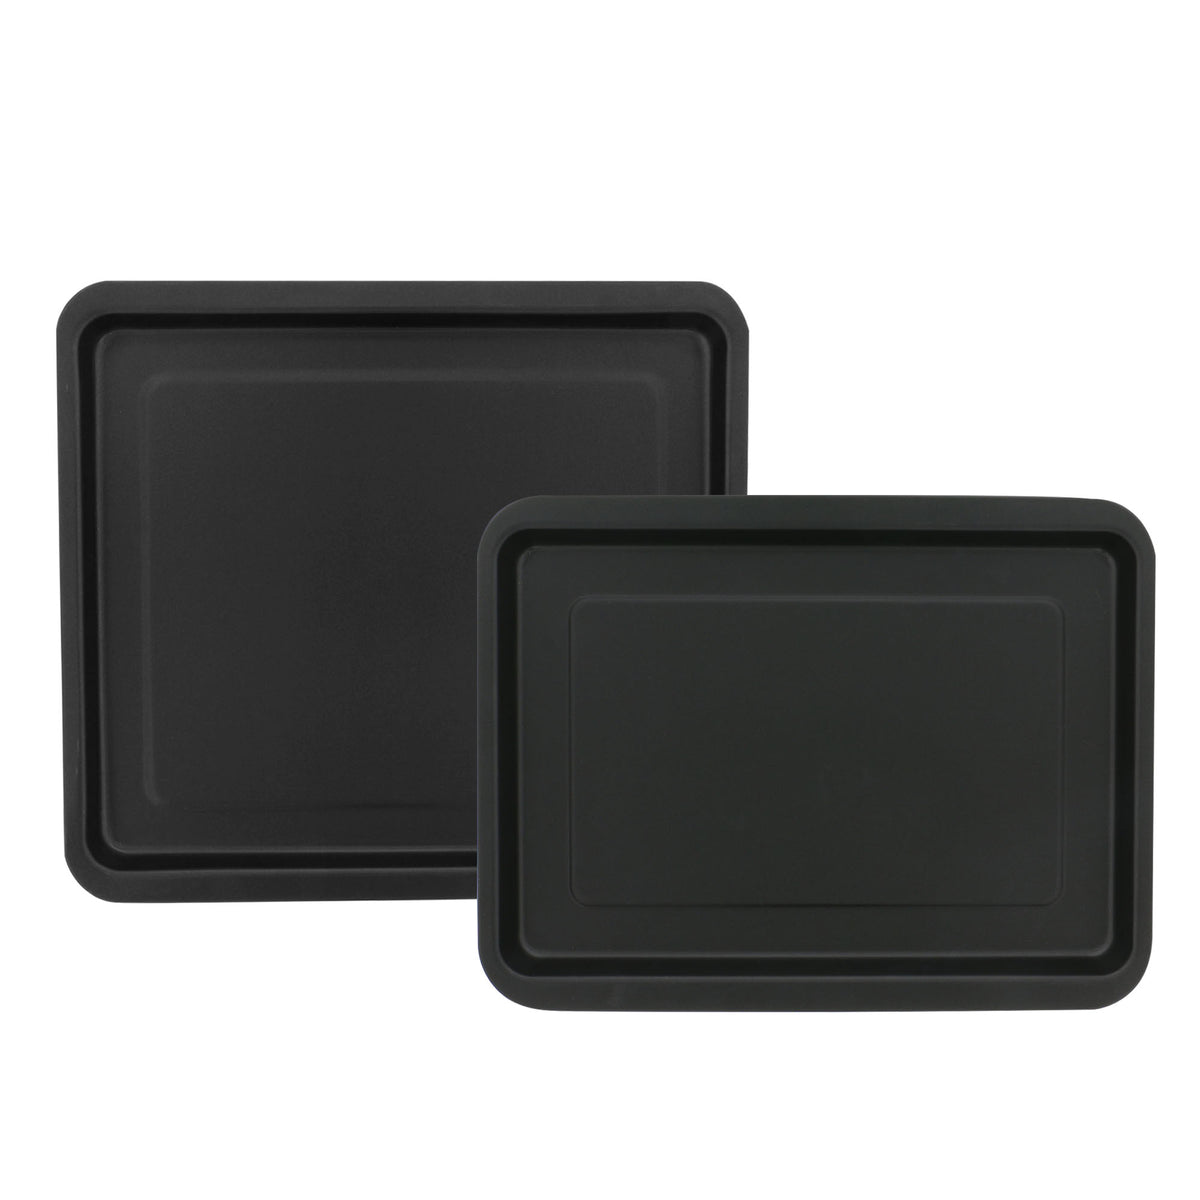 Ballarini La Patisserie Nonstick Jelly Roll Pan Set, Set of 2